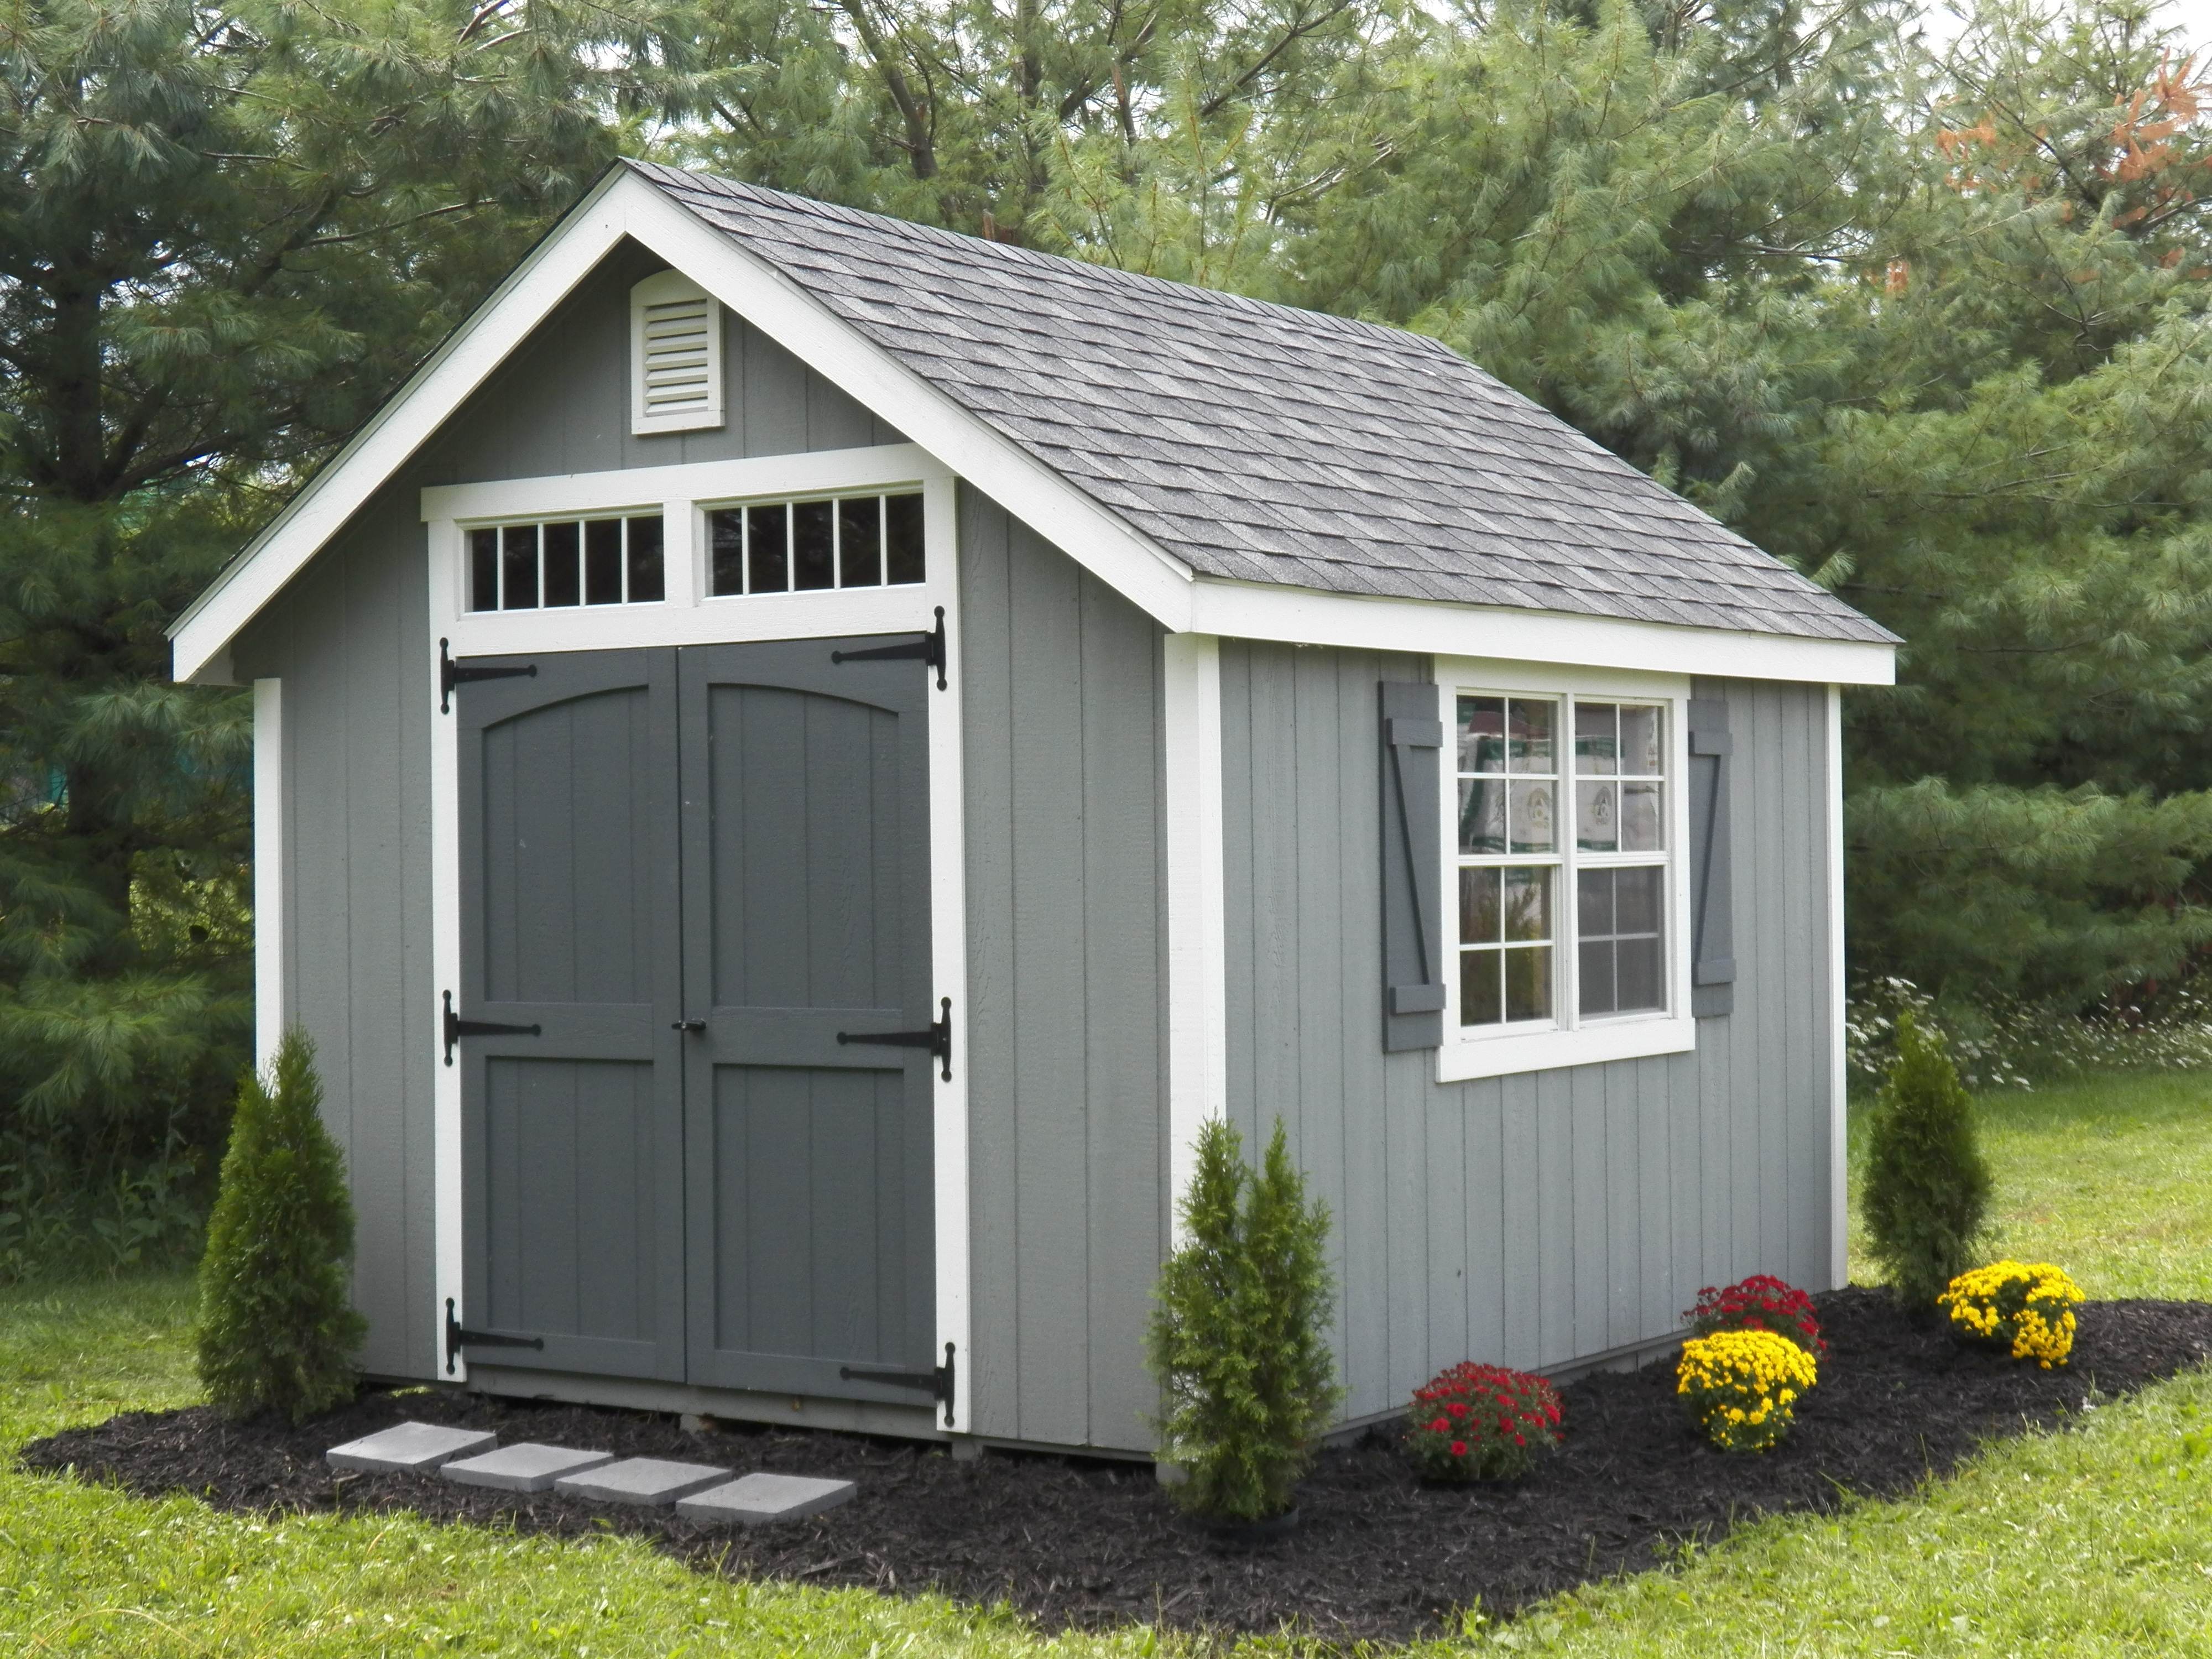 Portable Garages For Sale >> Amish Custom Sheds and Gazebos north of Montgomery County, MD